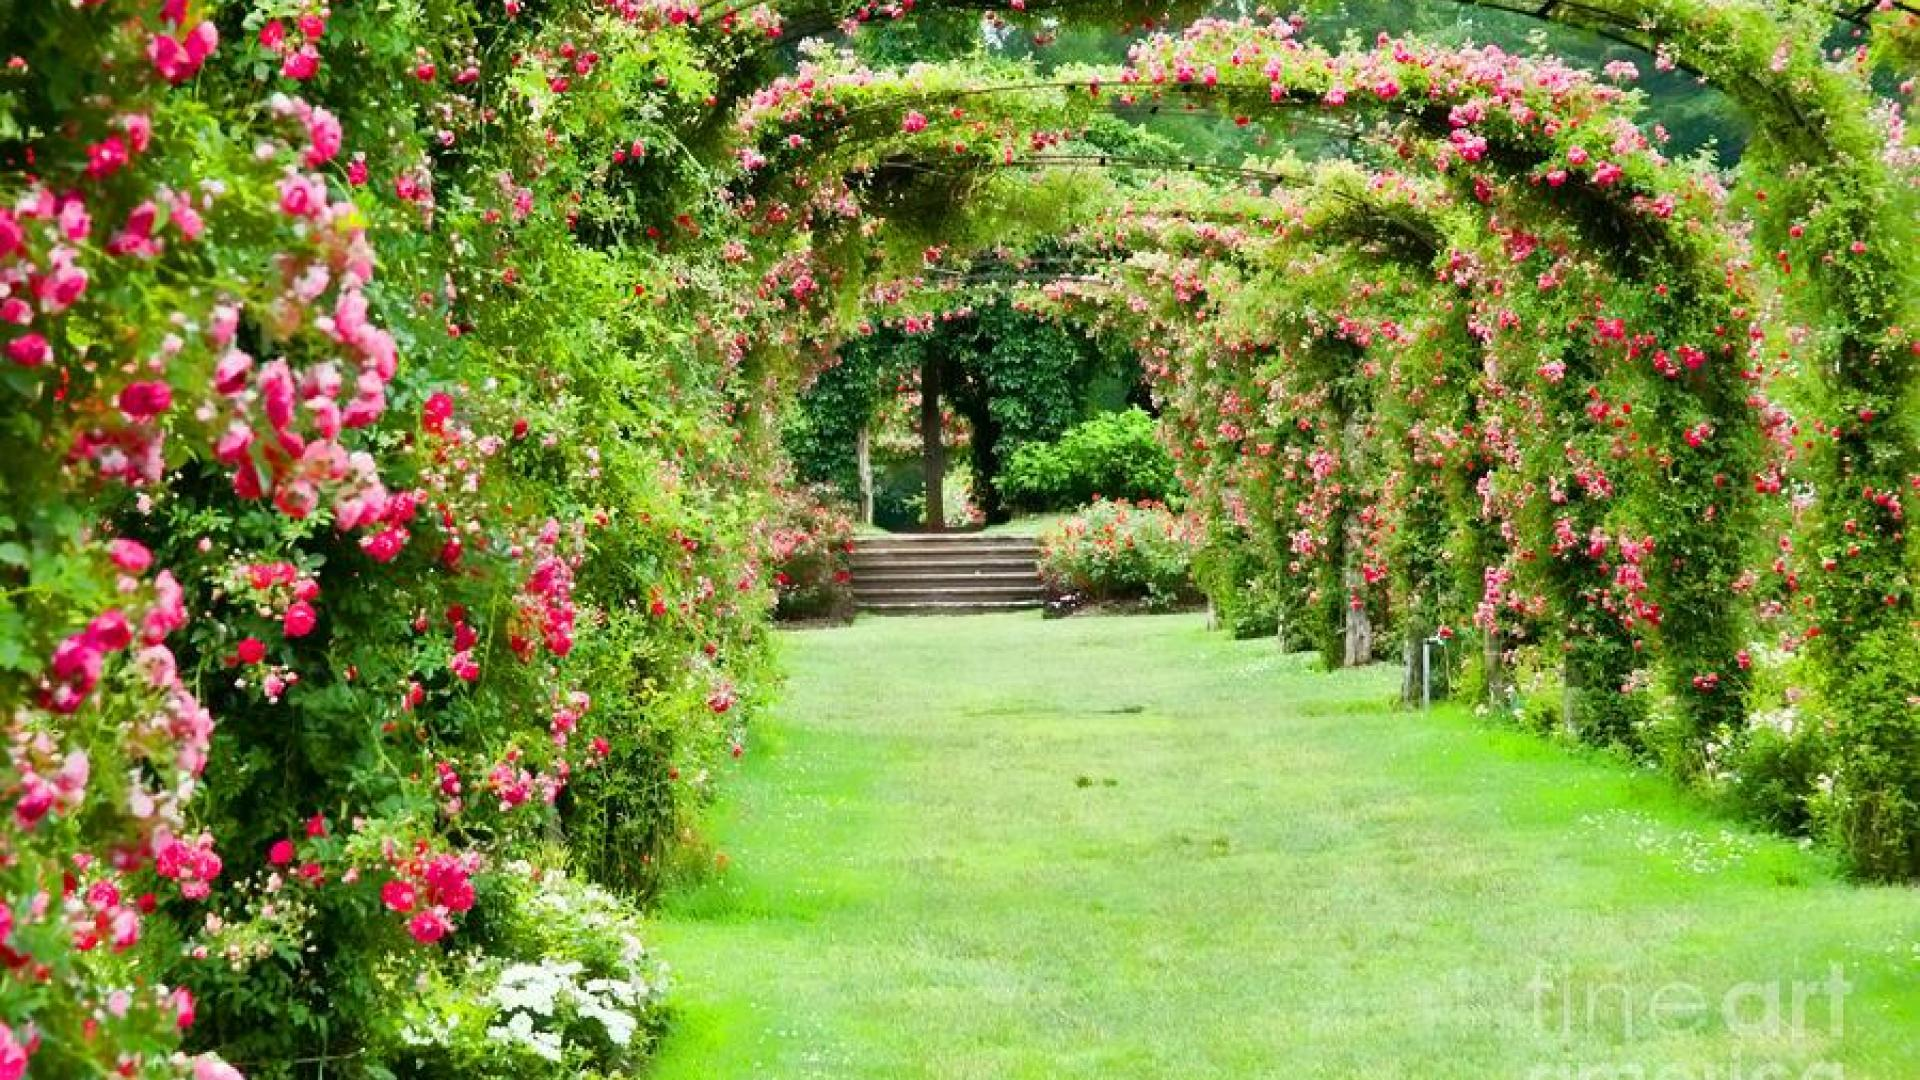 Rose Garden Wallpaper Desktops